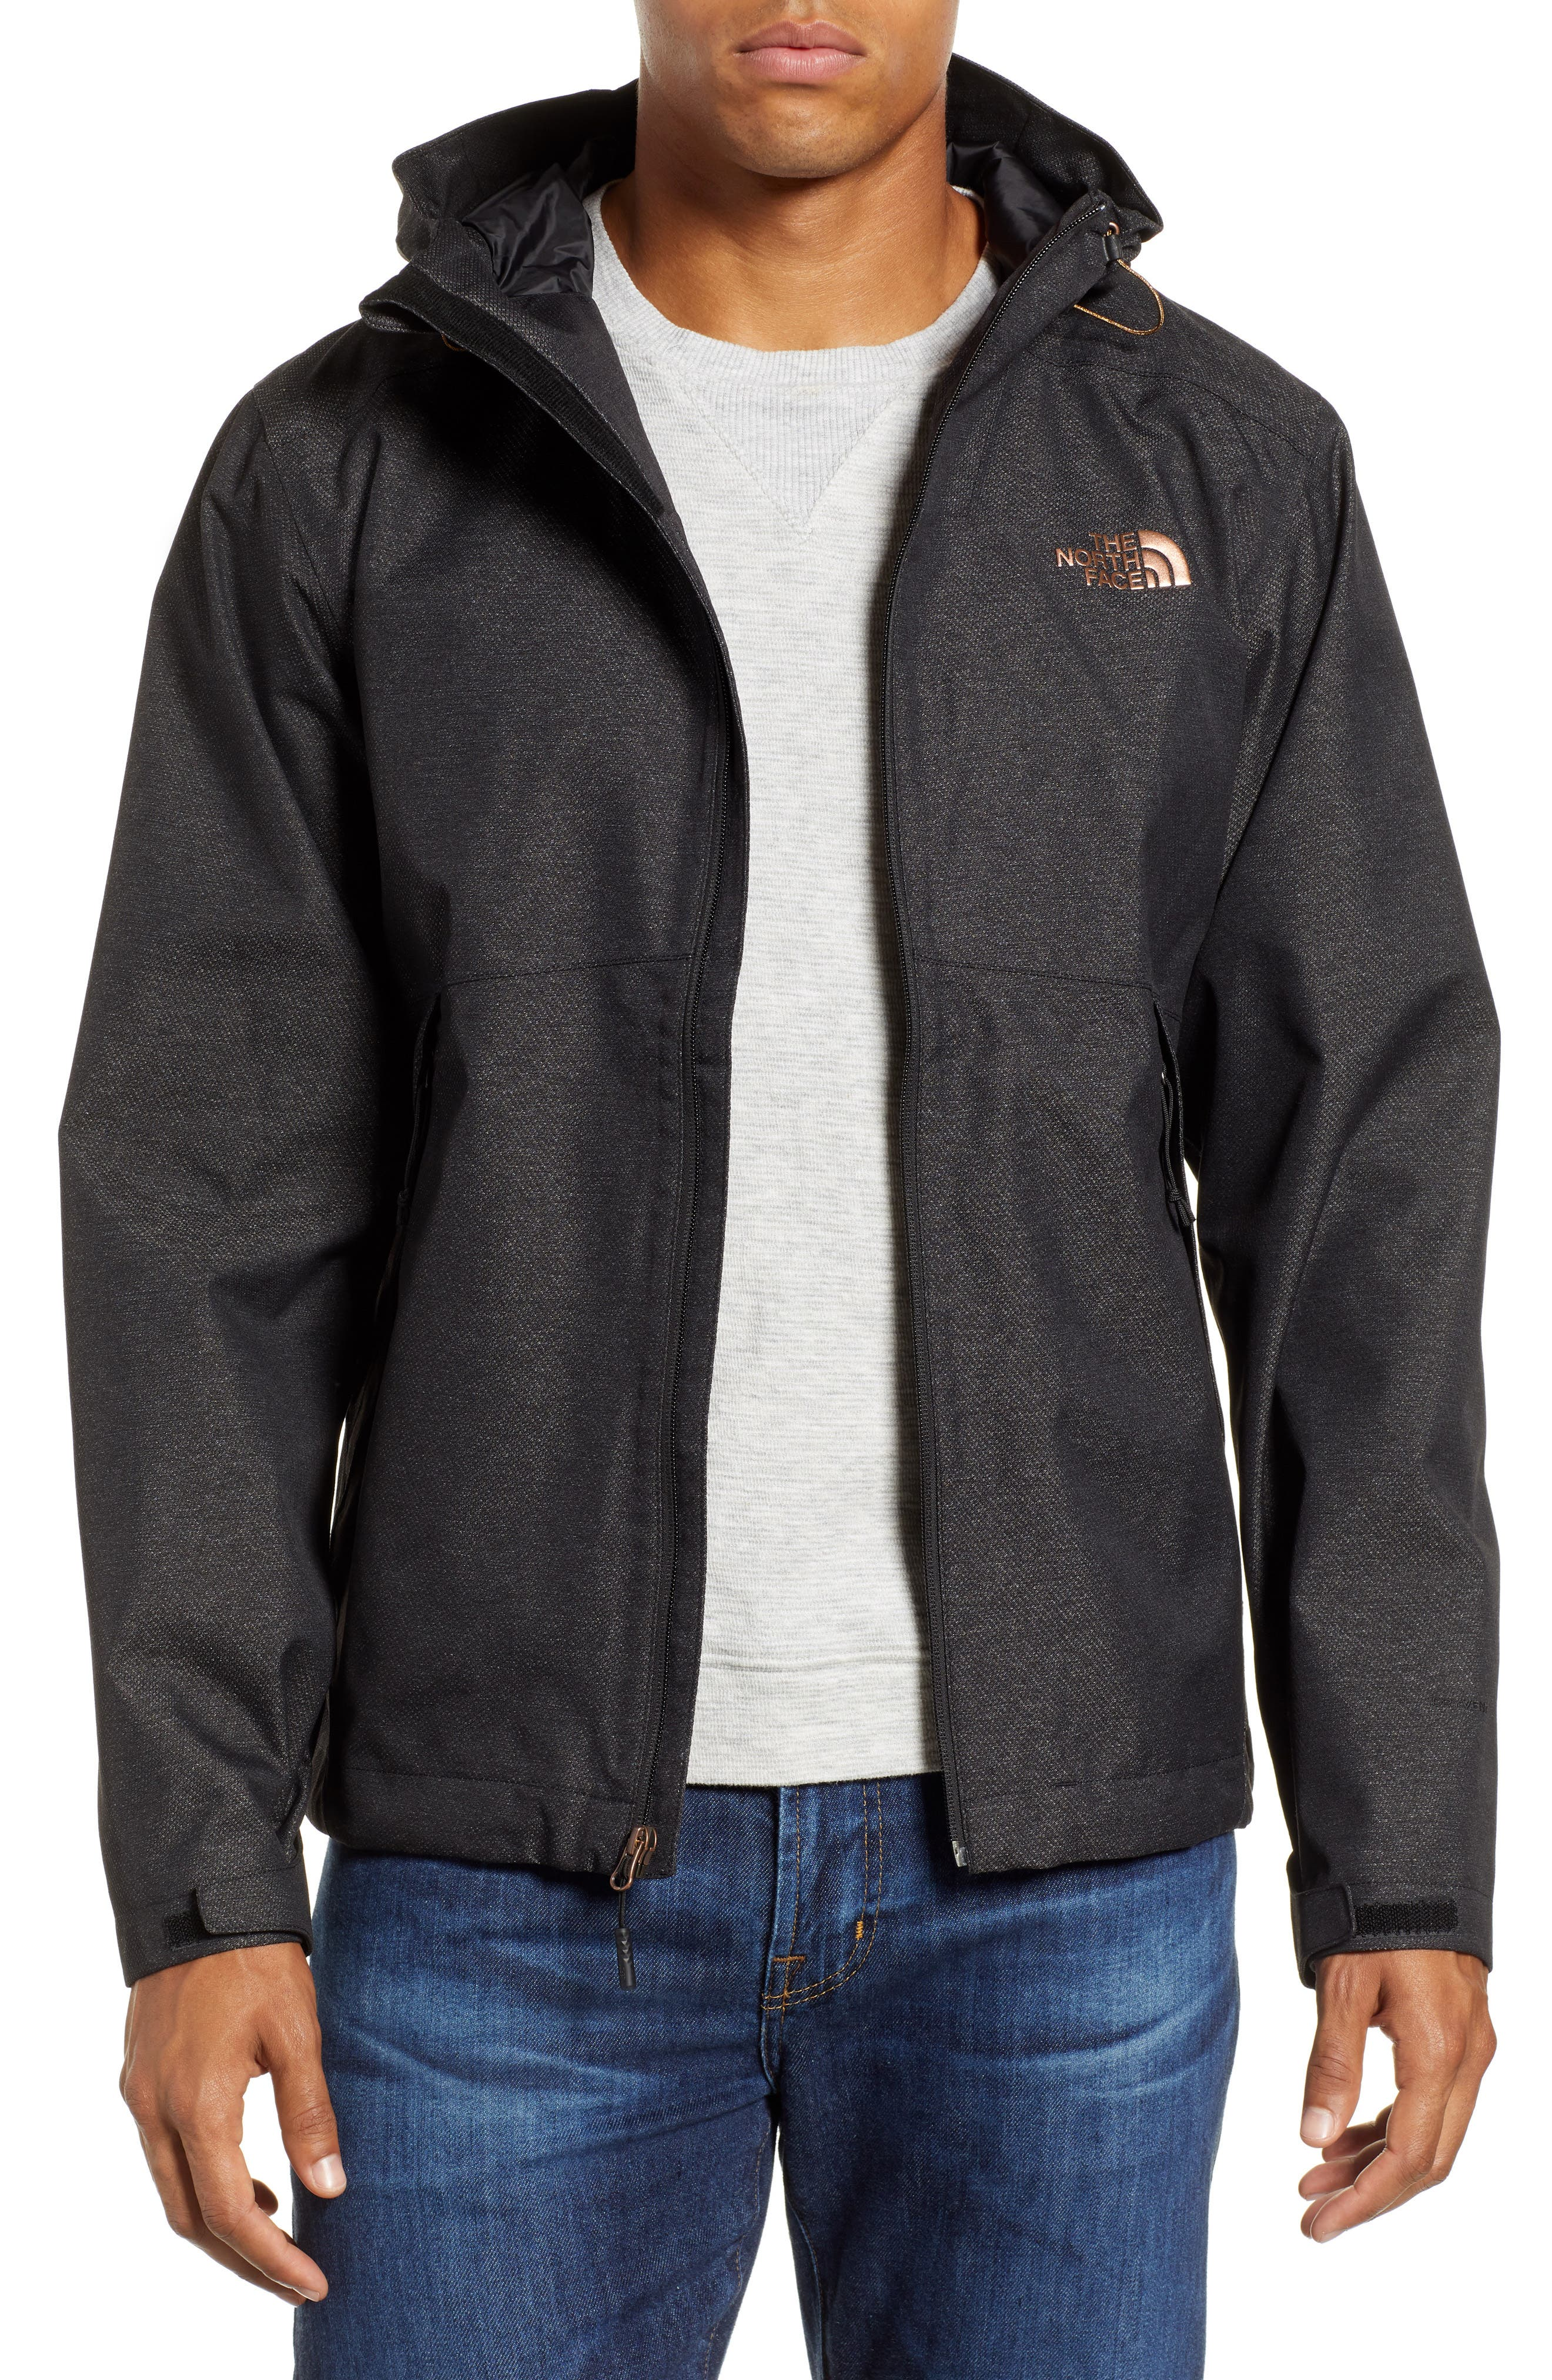 Millerton Hooded Waterproof Jacket,                             Main thumbnail 1, color,                             TNF BLACK / METALLIC COPPER